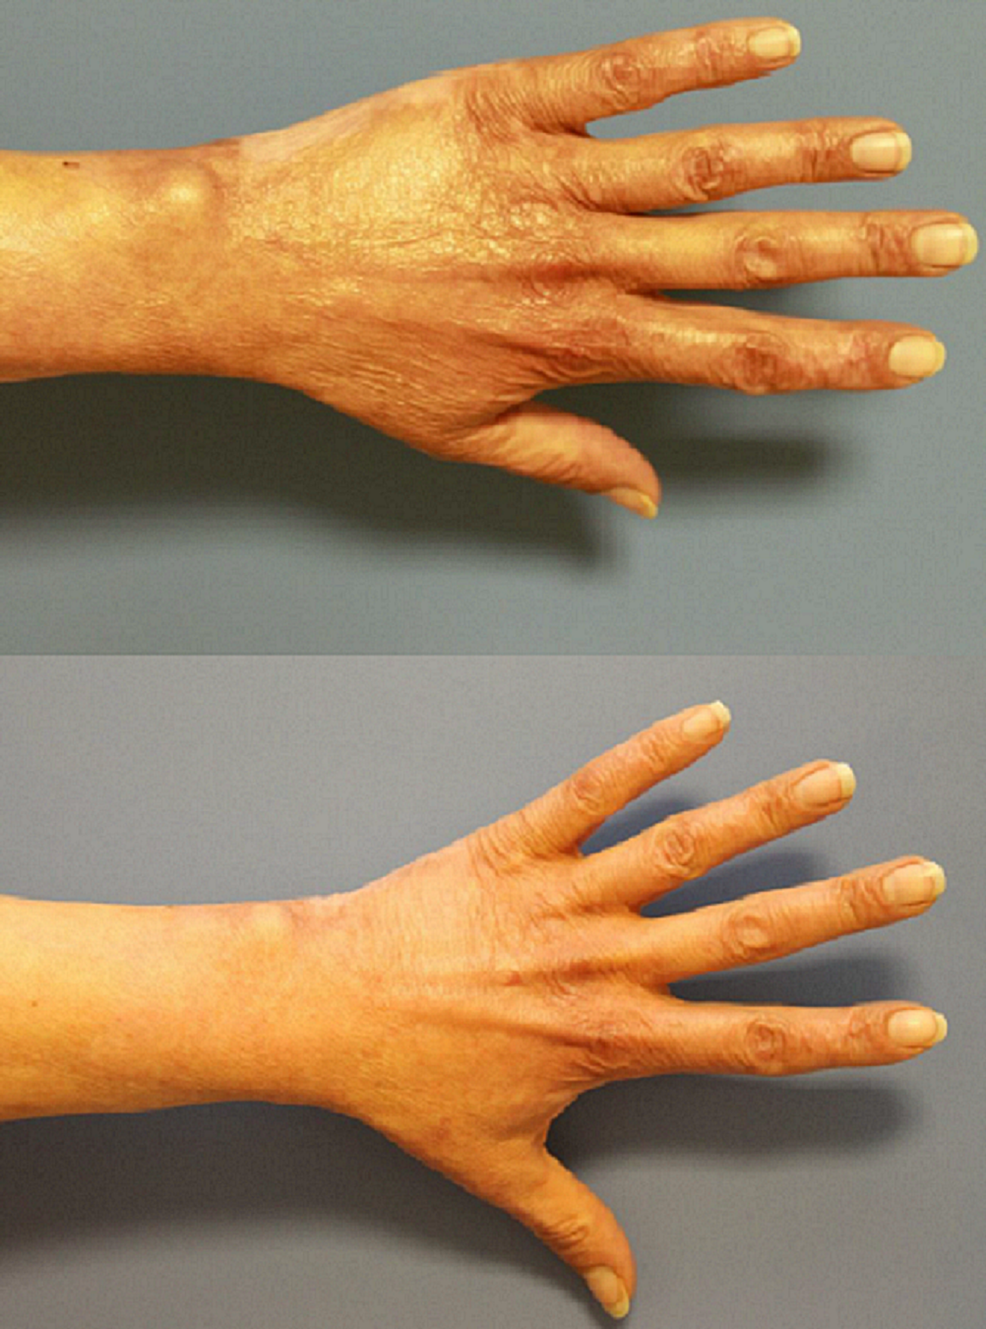 Patient-1,-dorsal-left-hand,-preoperatively-(above)-and-one-year-postoperatively-after-needling-(below)